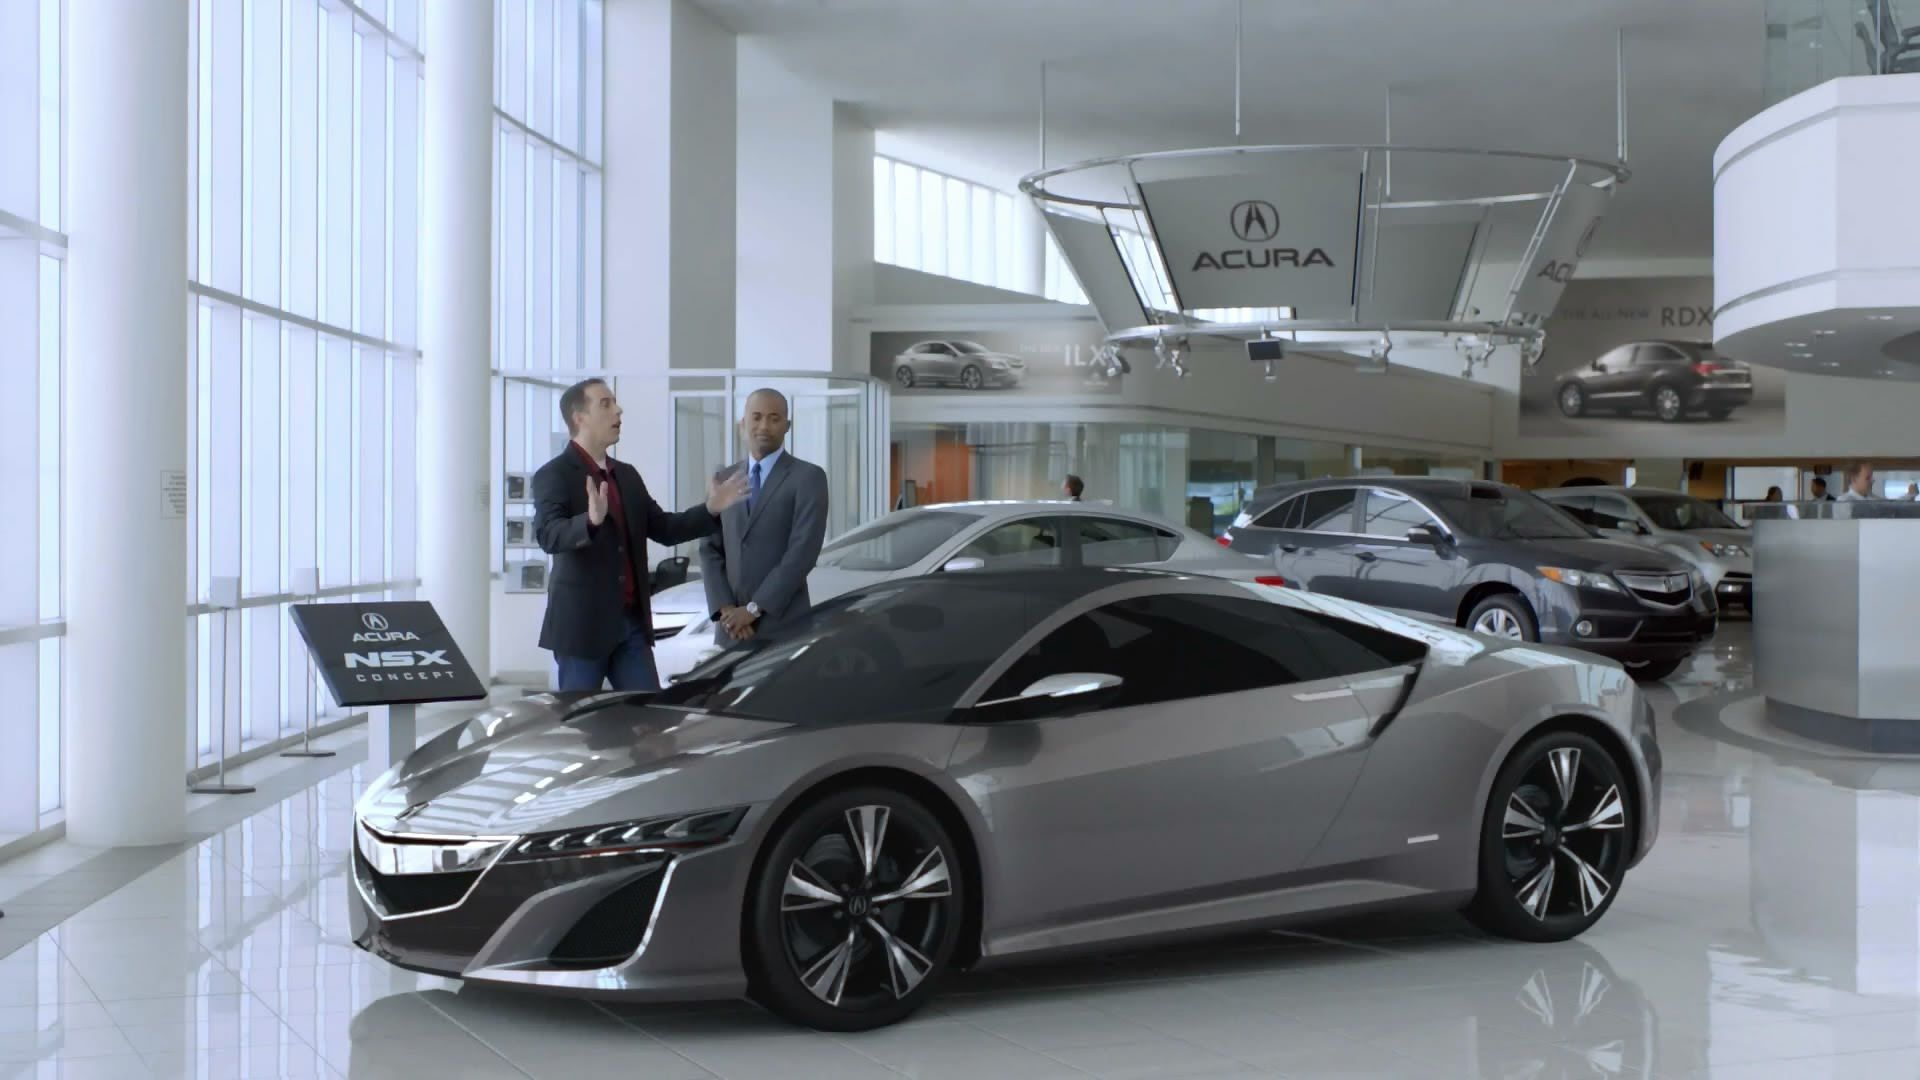 Acura nsx t 2001 1600x1200 wallpaper 03 new wallpapers pinterest acura nsx